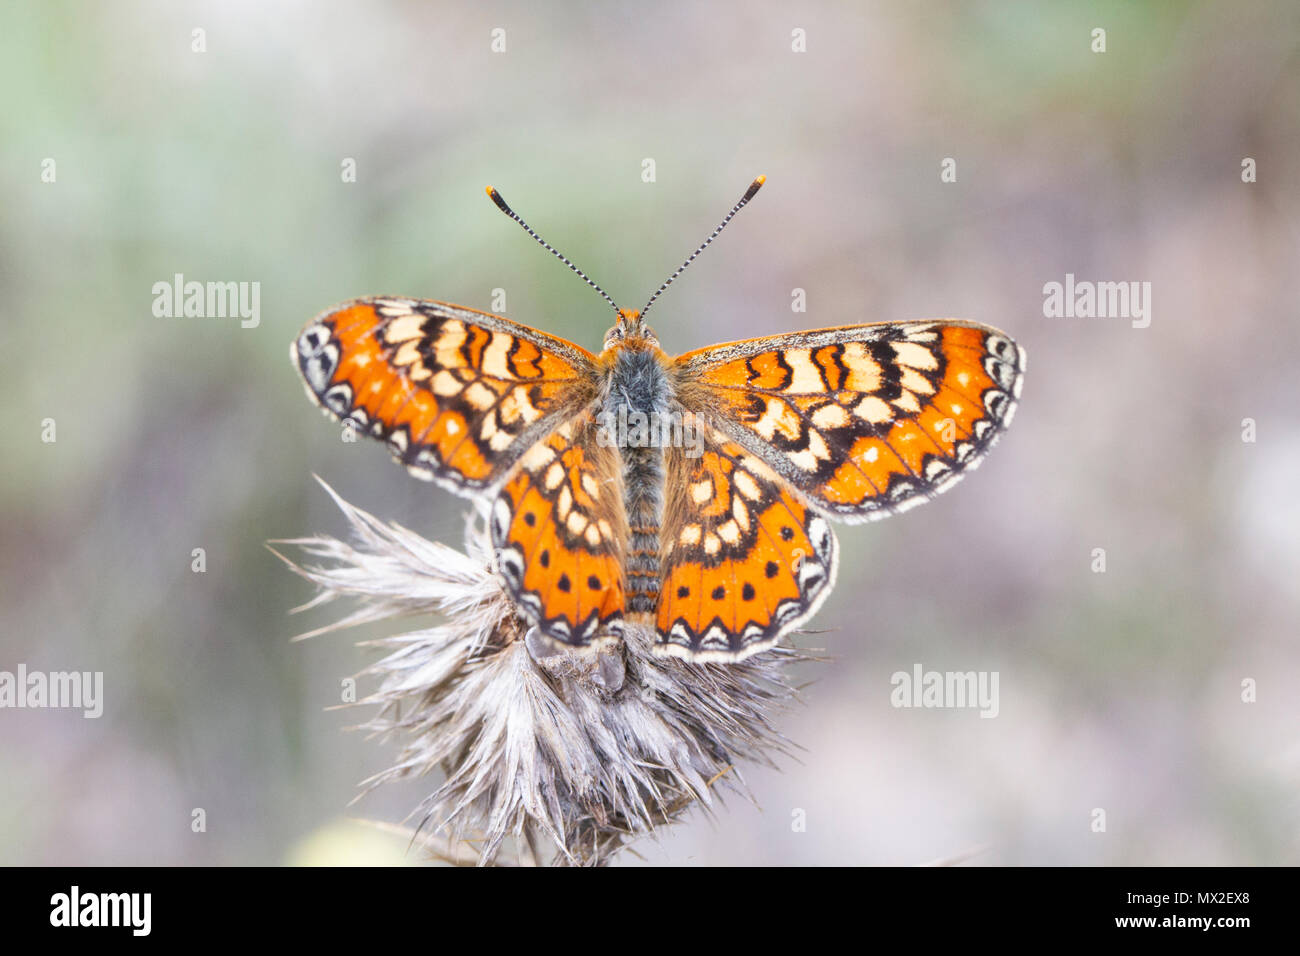 Butterfly {Euphydryas desfontainii), wings open. - Stock Image